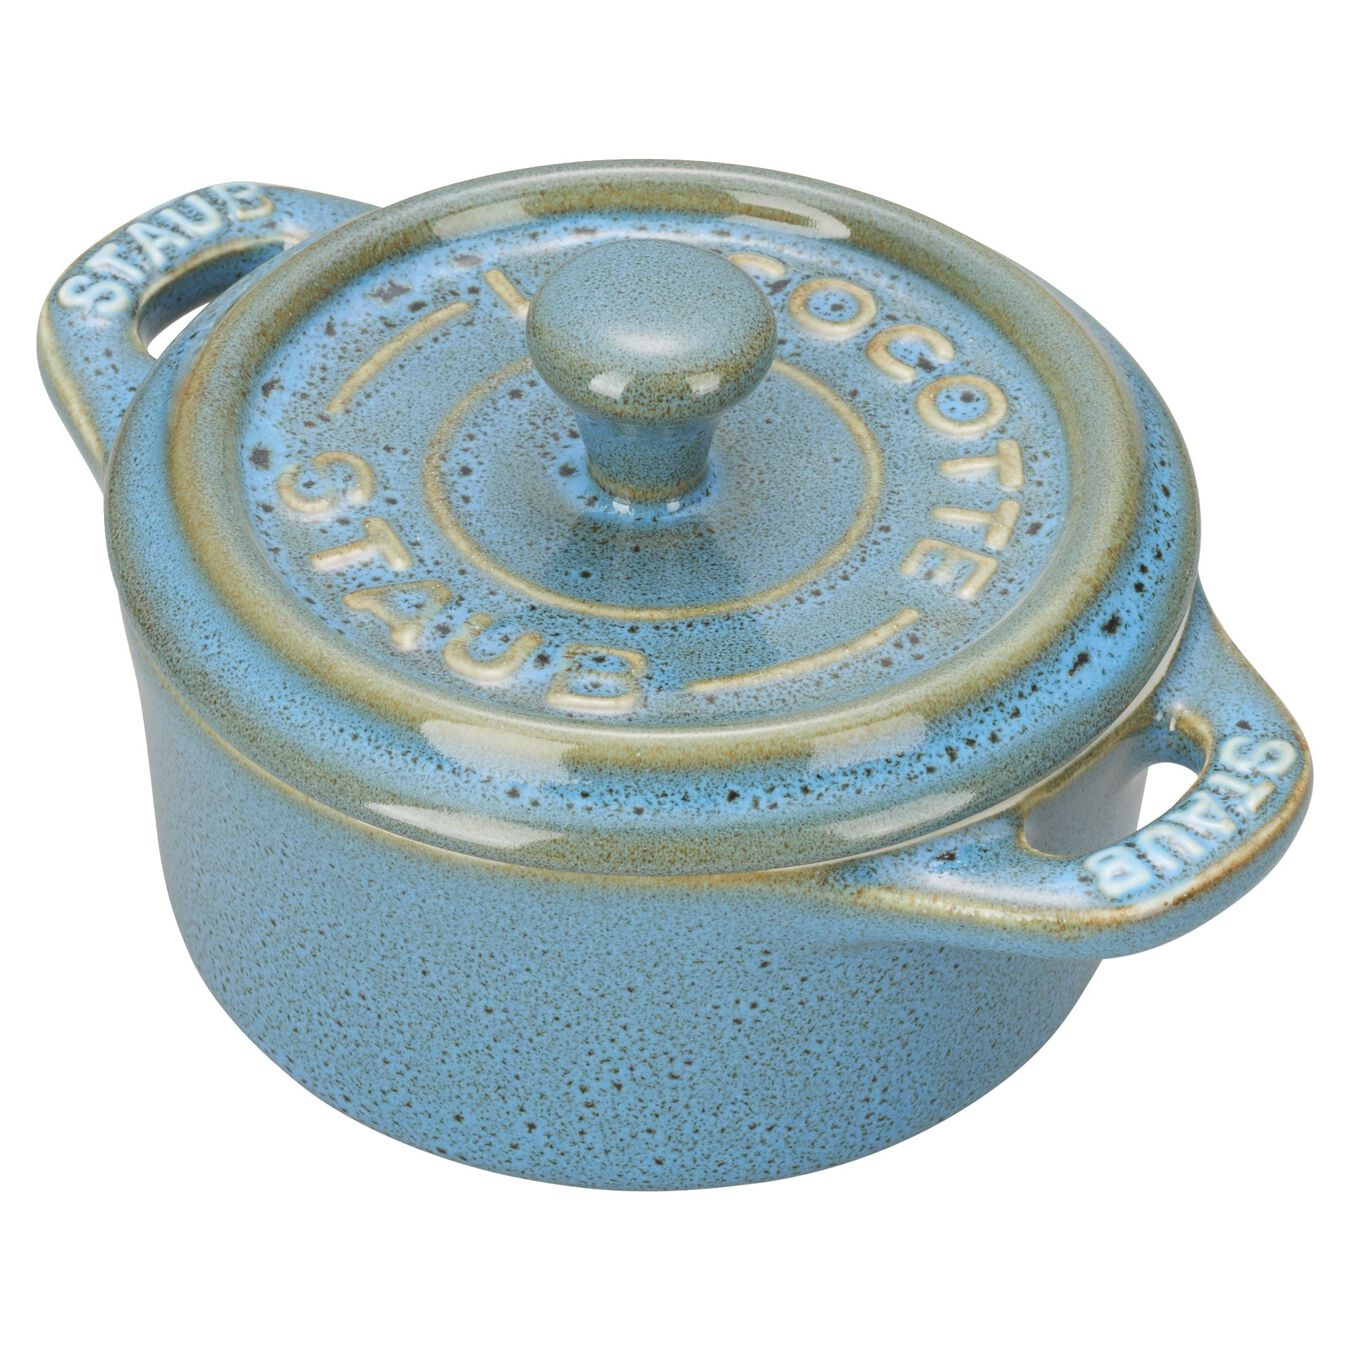 3-pc Mini Round Cocotte Set - Rustic Turquoise,,large 2